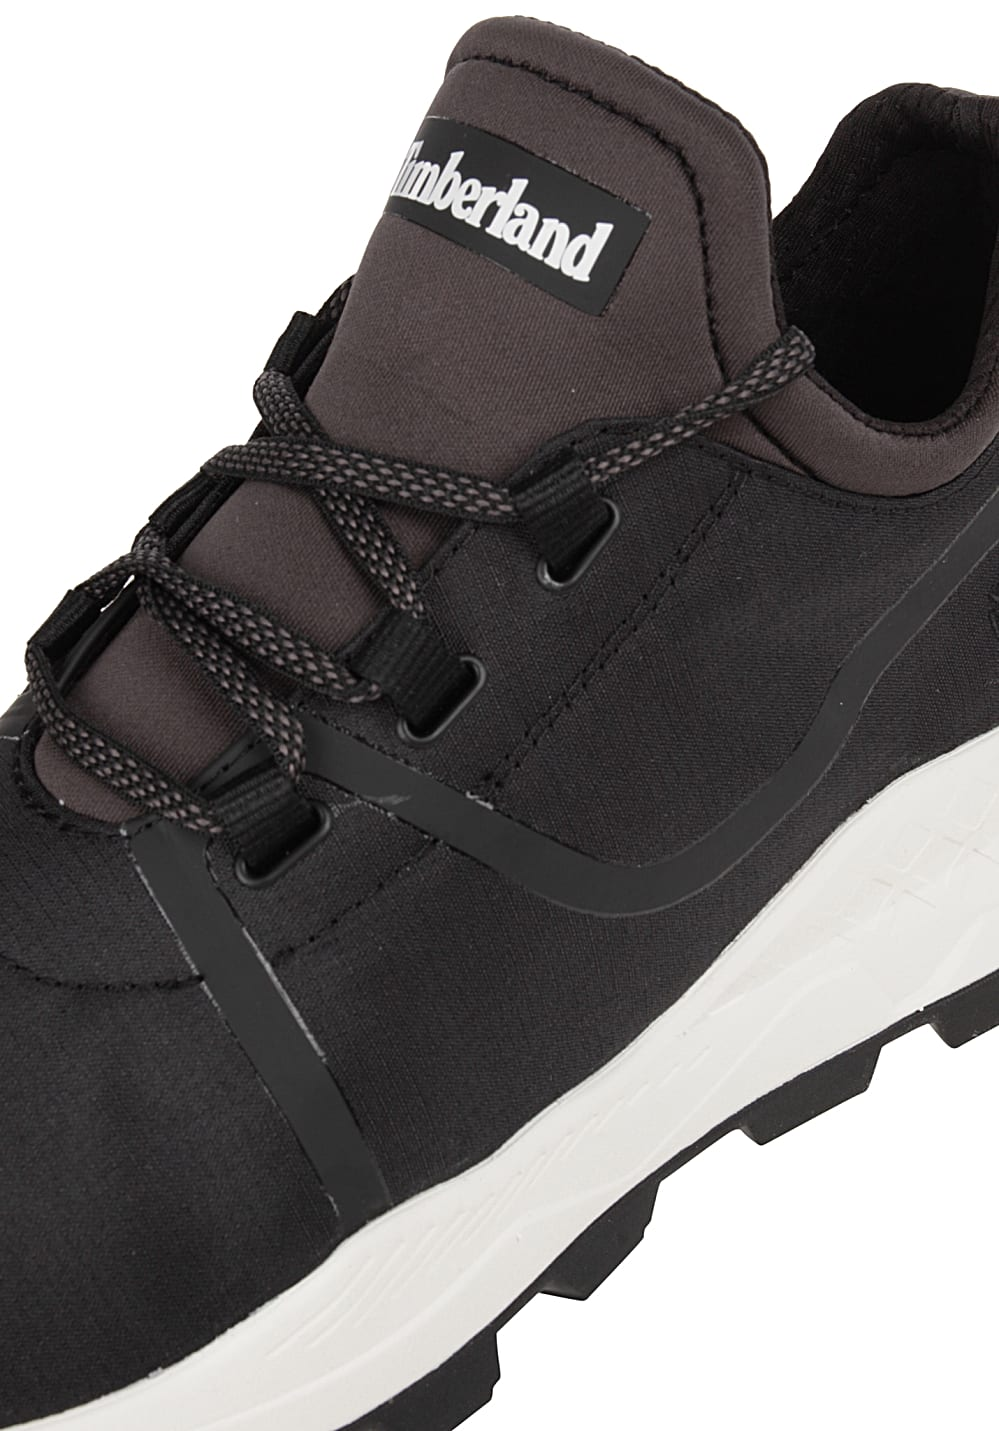 TIMBERLAND Brooklyn Fabric Oxford Sneakers for Men Black